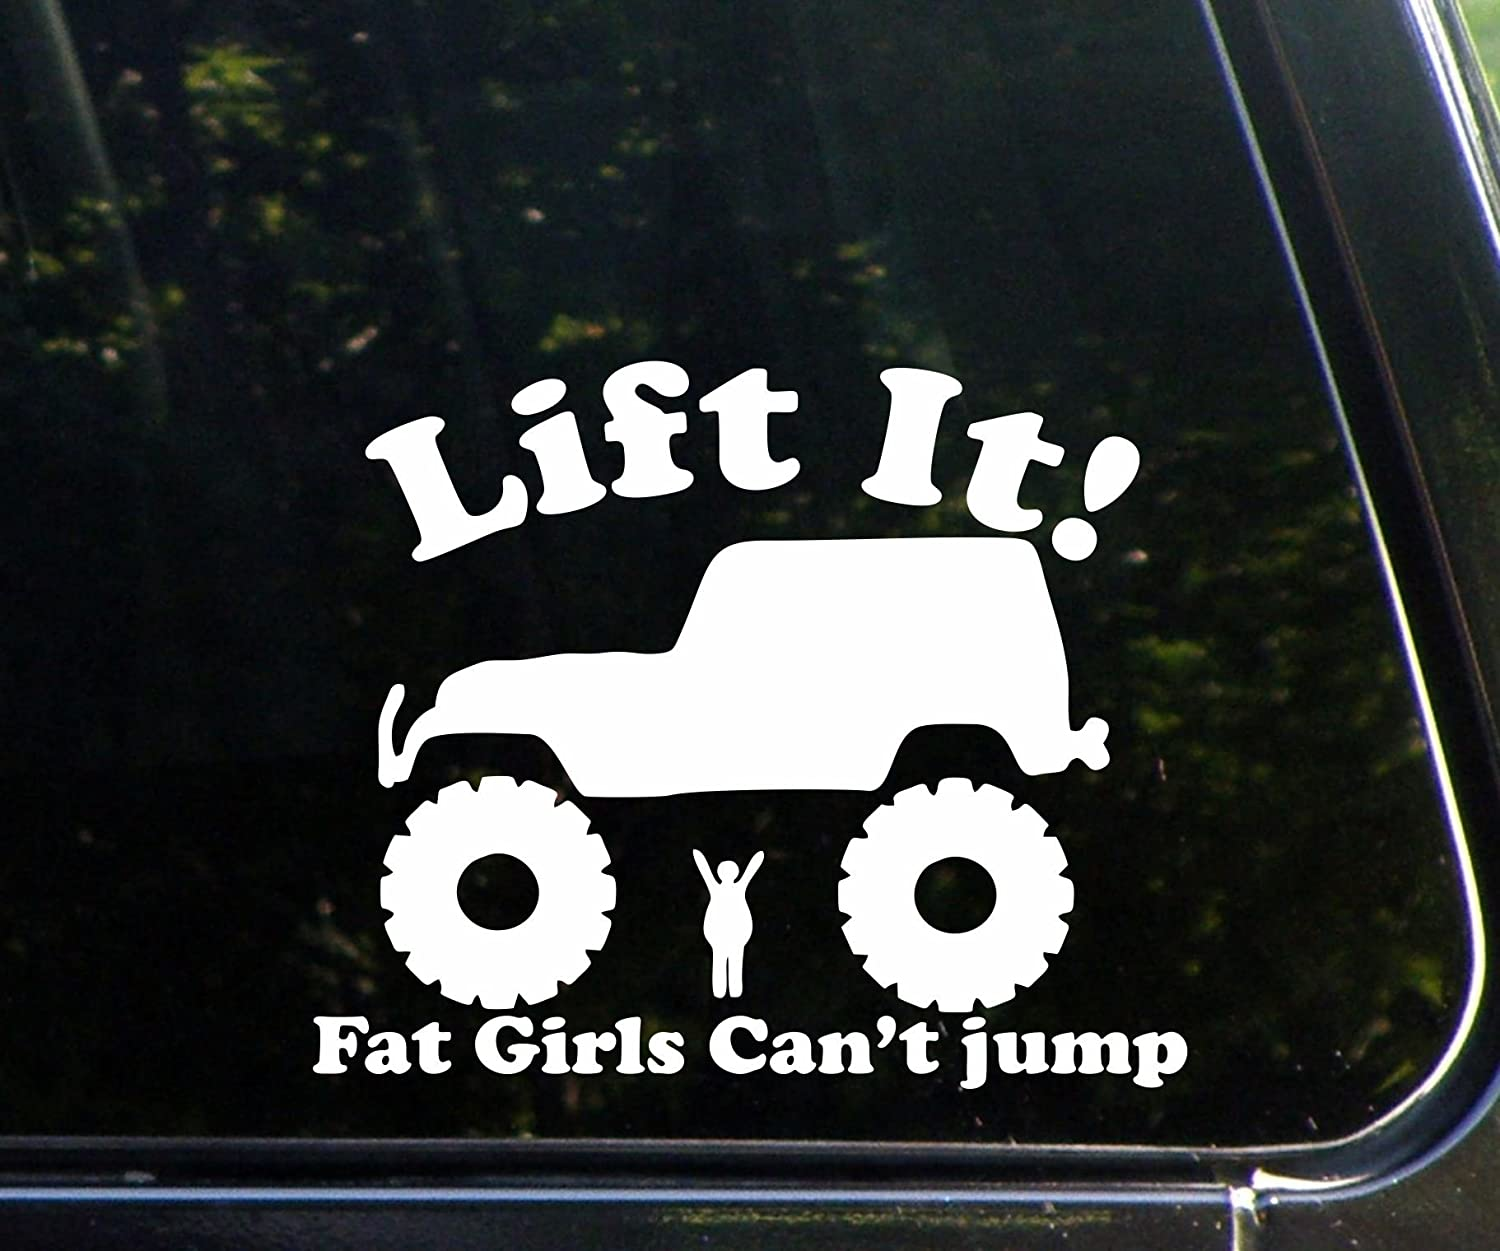 Amazoncom Lift It Fat Girls Cant Jump Jeep Off Road Car Window - Window decals amazon